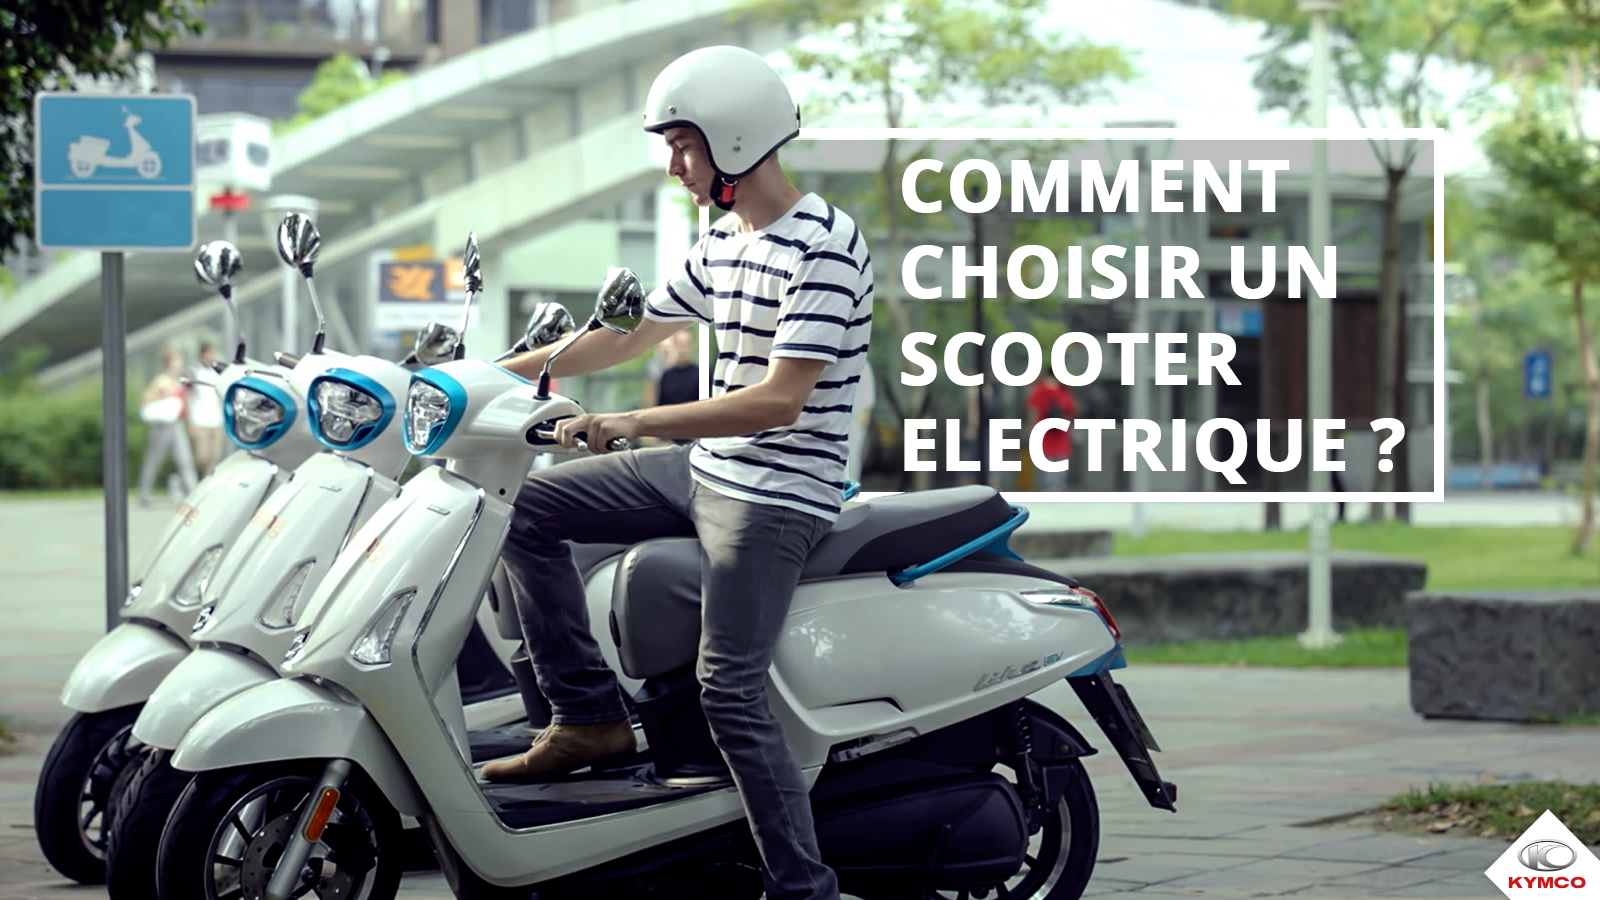 comment-choisir-scooter-electrique-featured